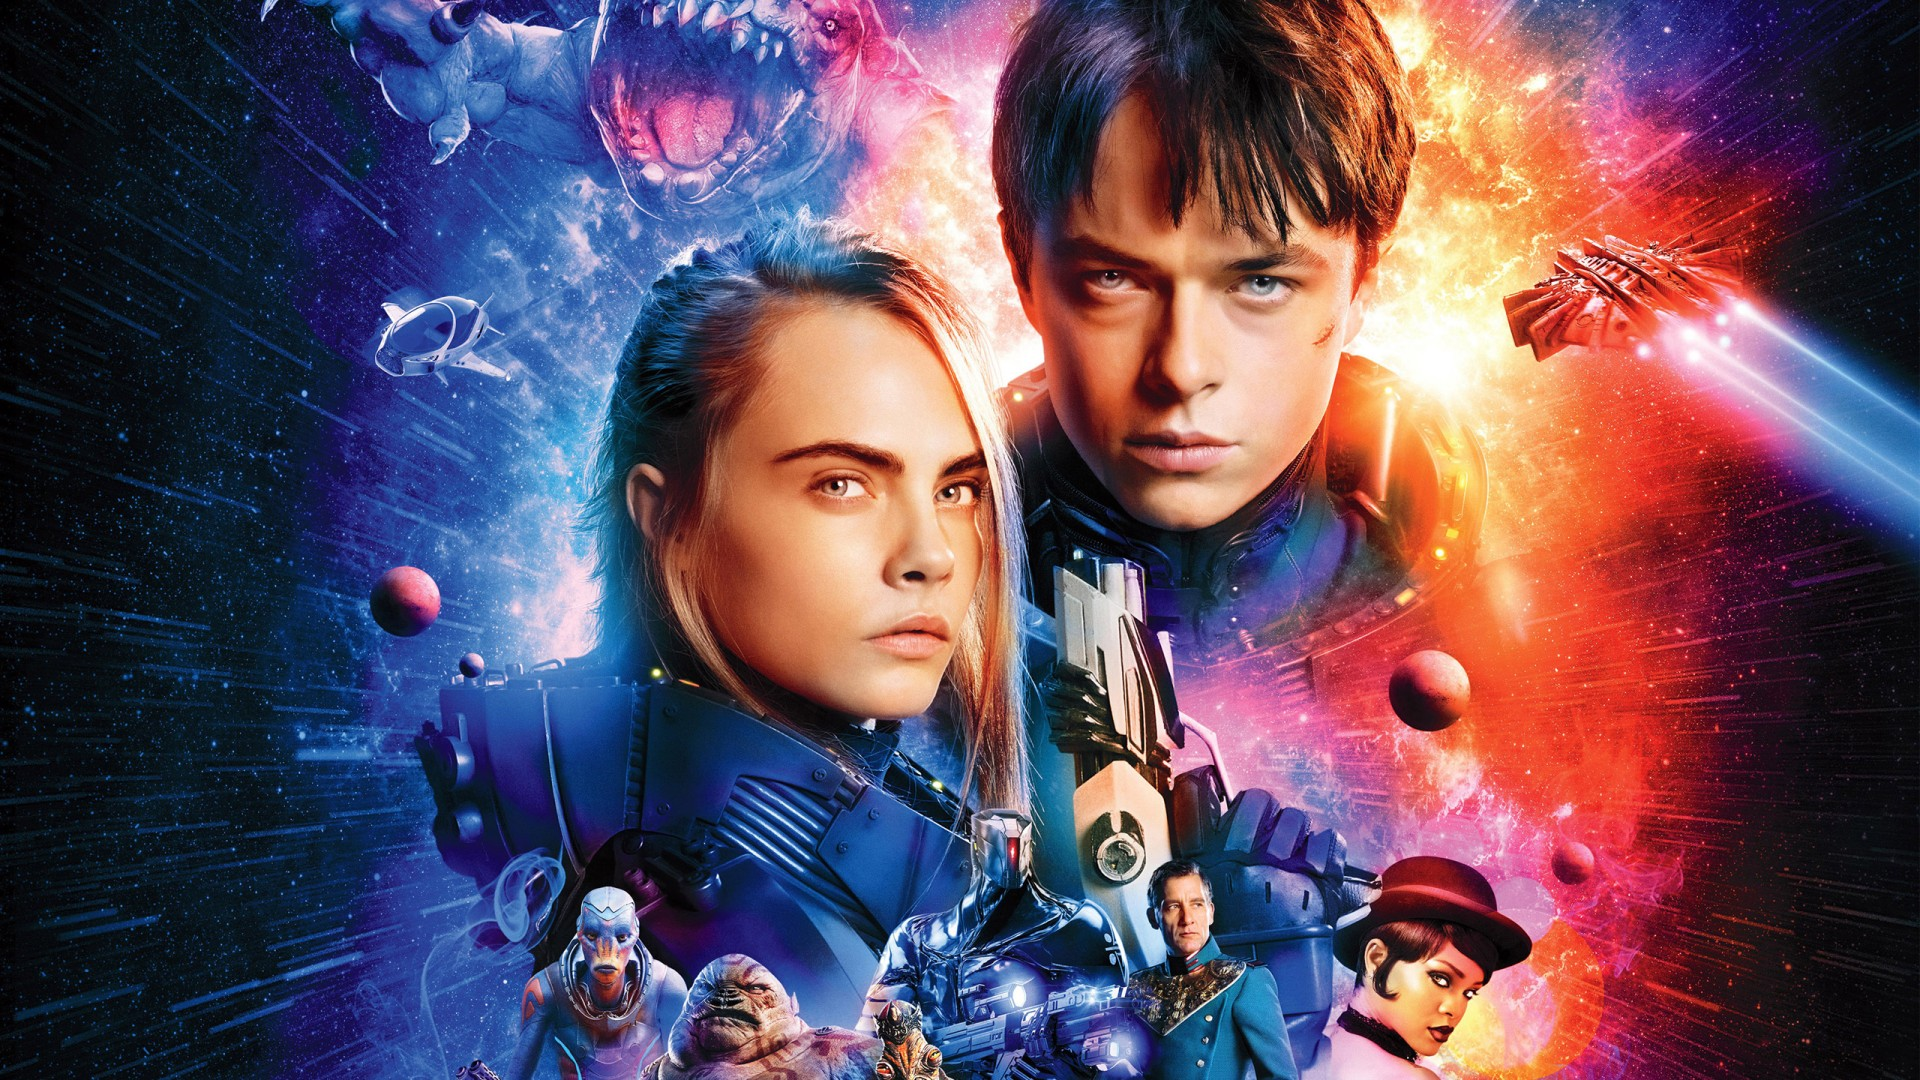 3d Apple Wallpaper Hd 1080p Download Valerian And The City Of A Thousand Planets Hd Wallpapers